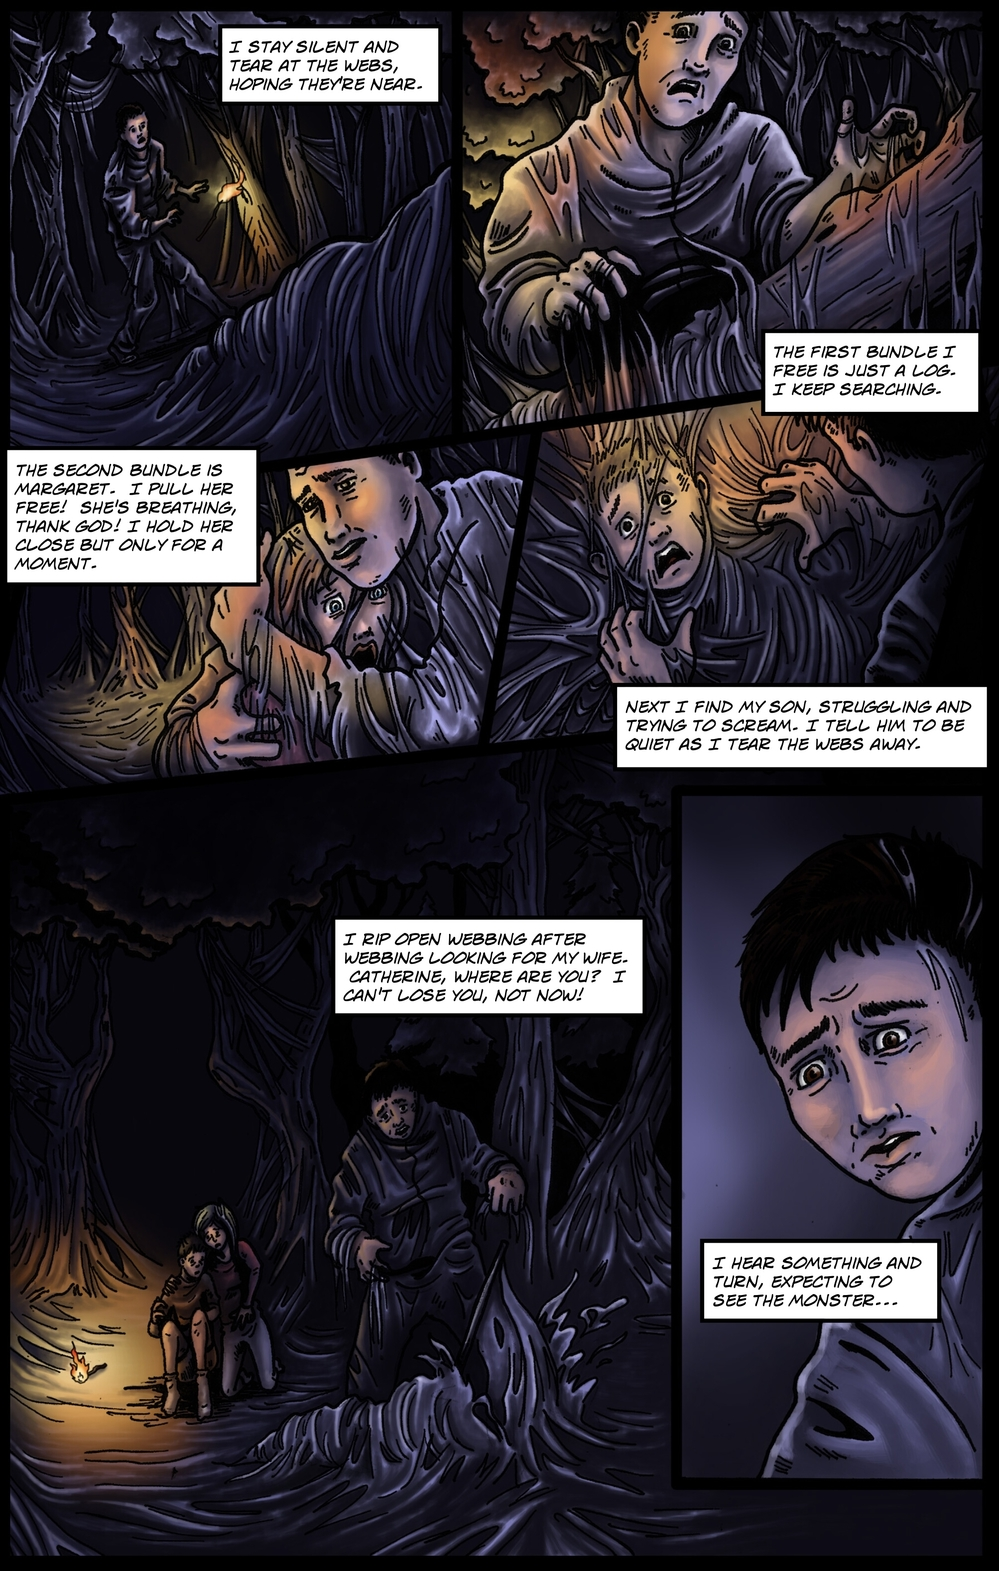 COCOON page 4 - story 9 in The Book of Lies